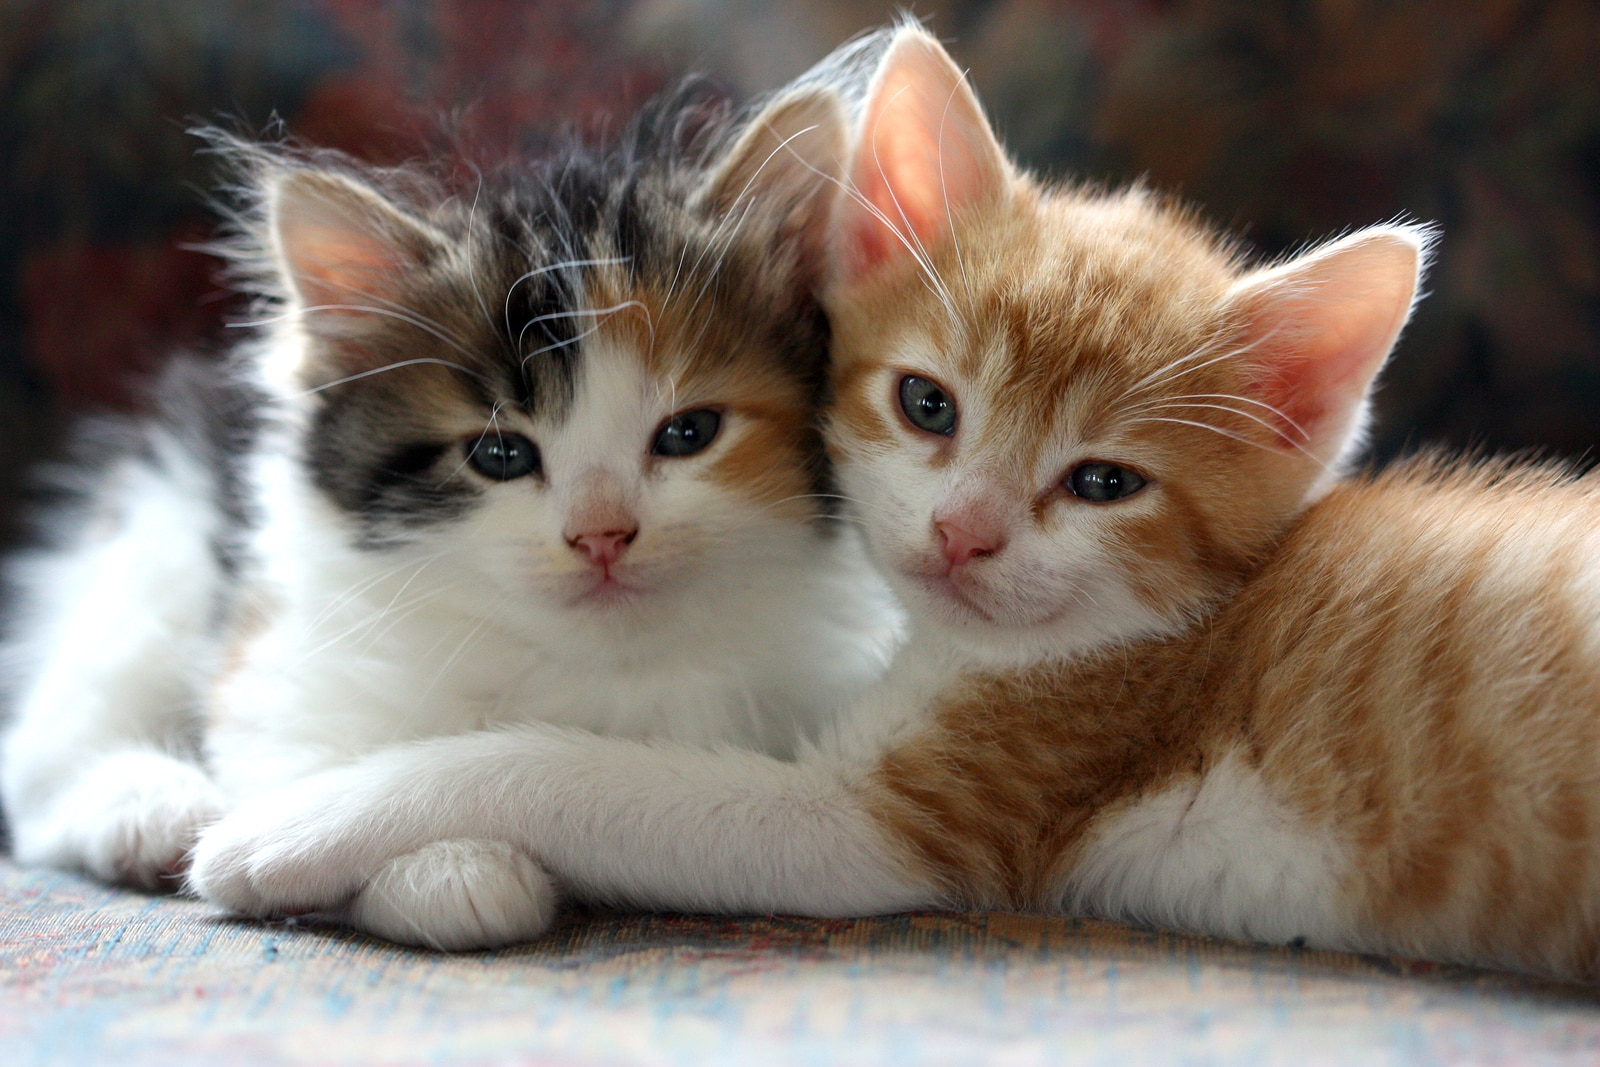 Two kittens cuddling together.